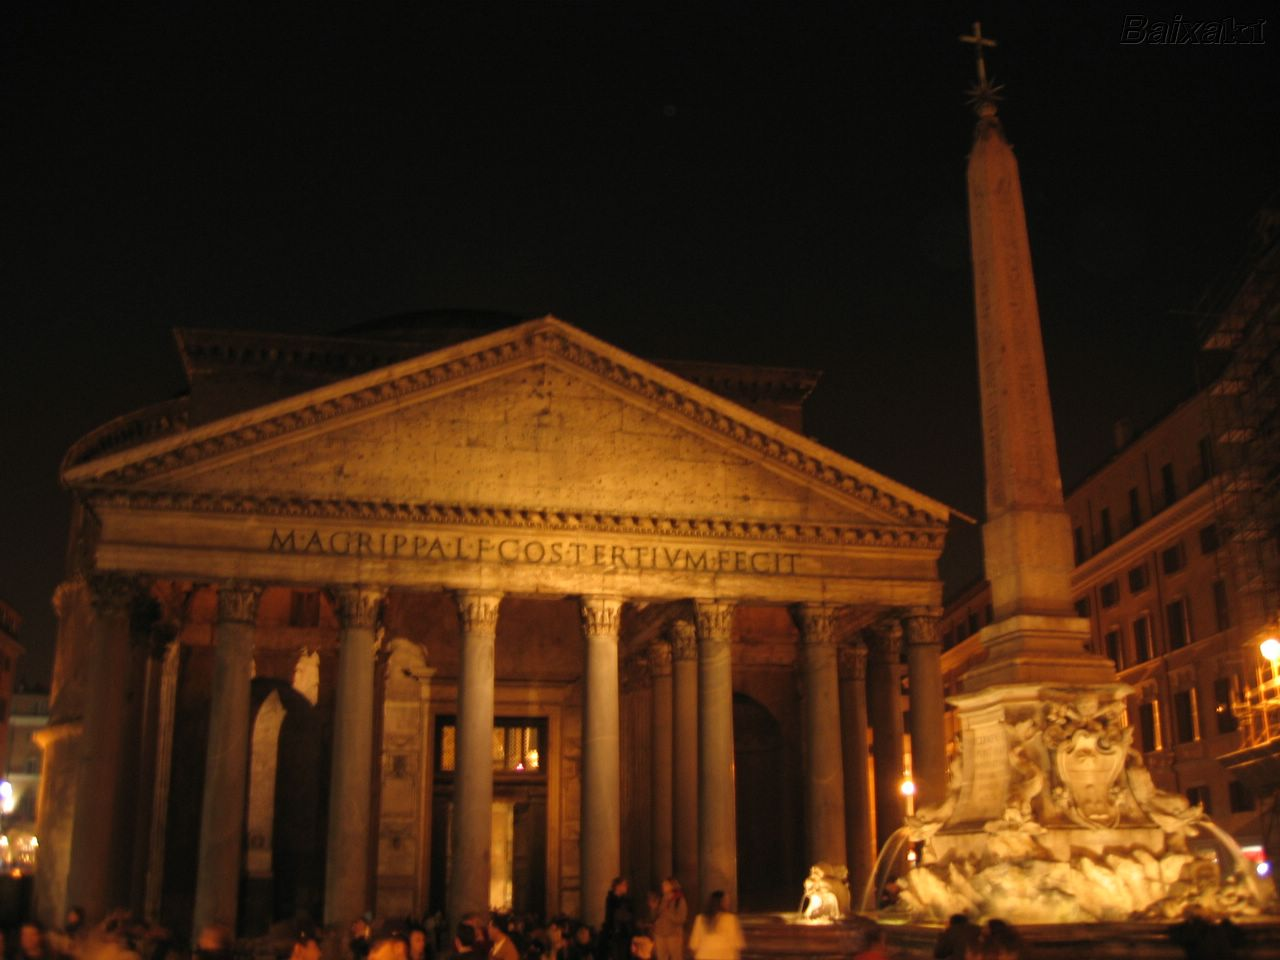 pantheon rome essay Pantheon essays: over 180,000 pantheon essays, pantheon term papers, pantheon research paper, book reports 184 990 essays, term and.